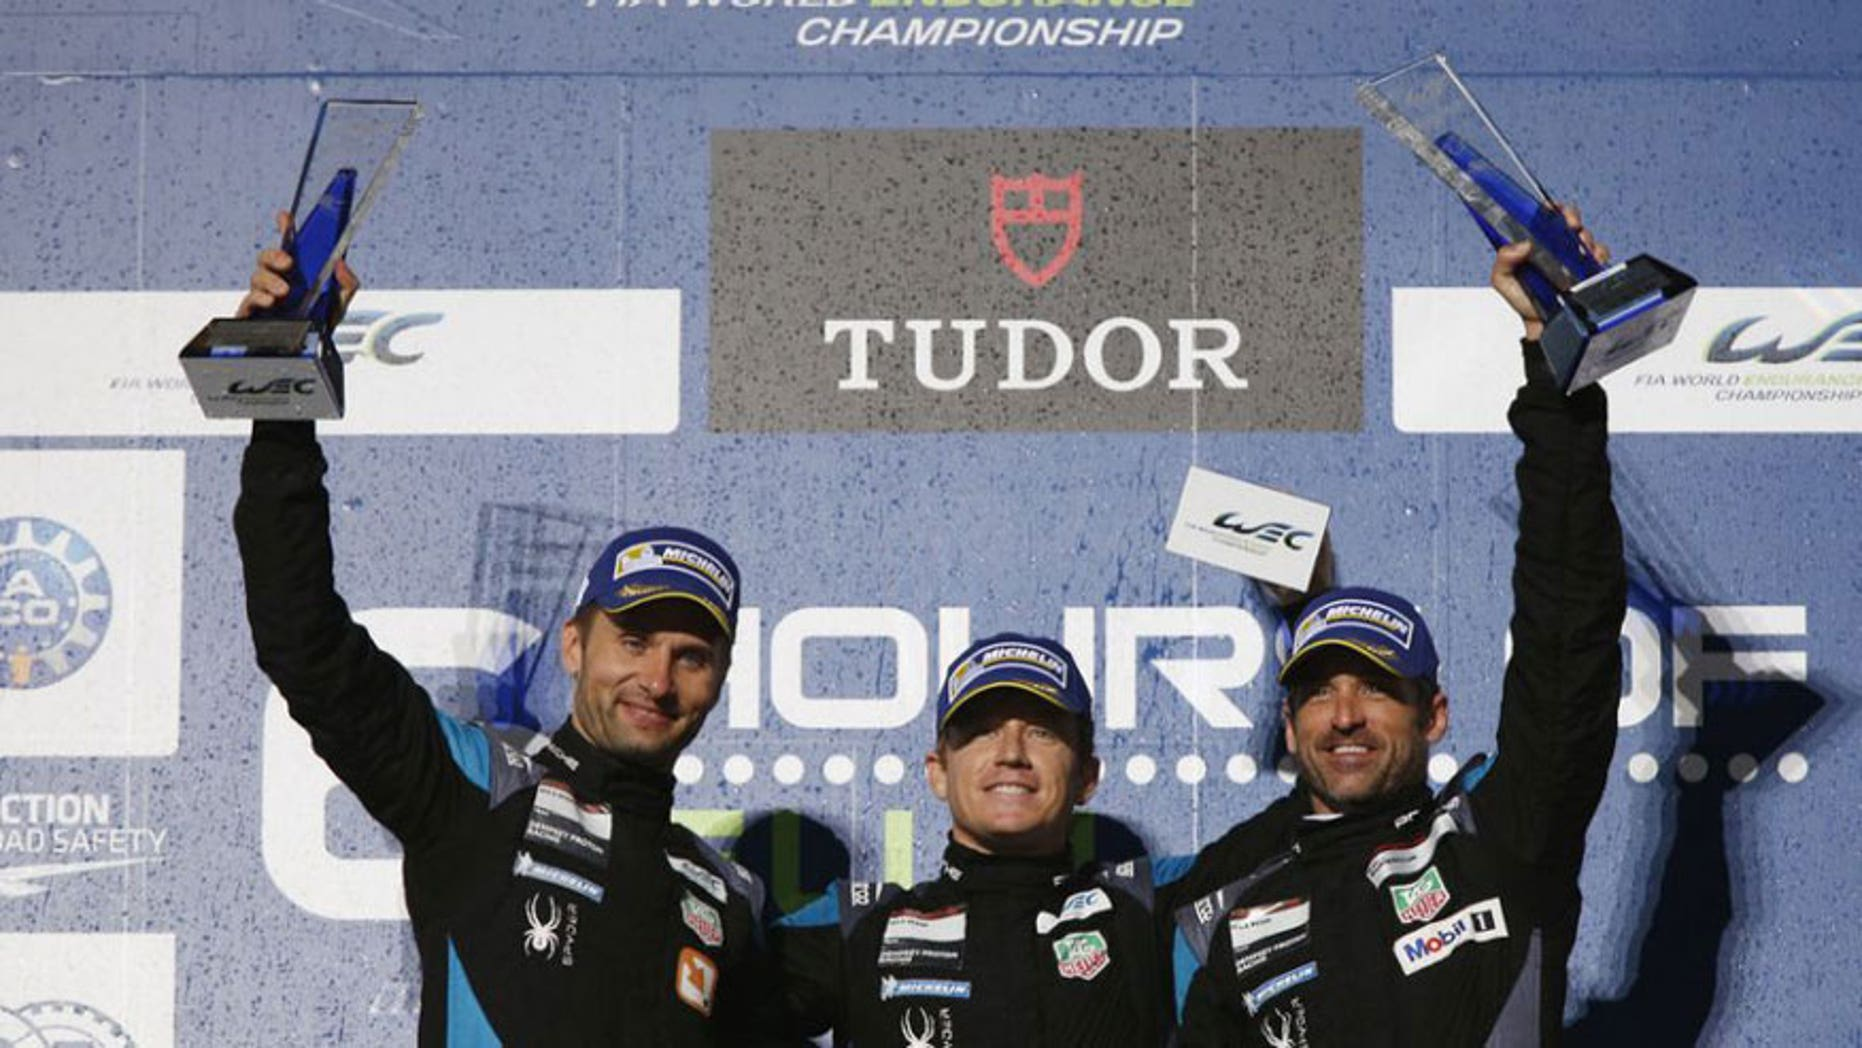 Dempsey Proton Racing drivers Marco Seefried, Patrick Long, and Patrick Dempsey.